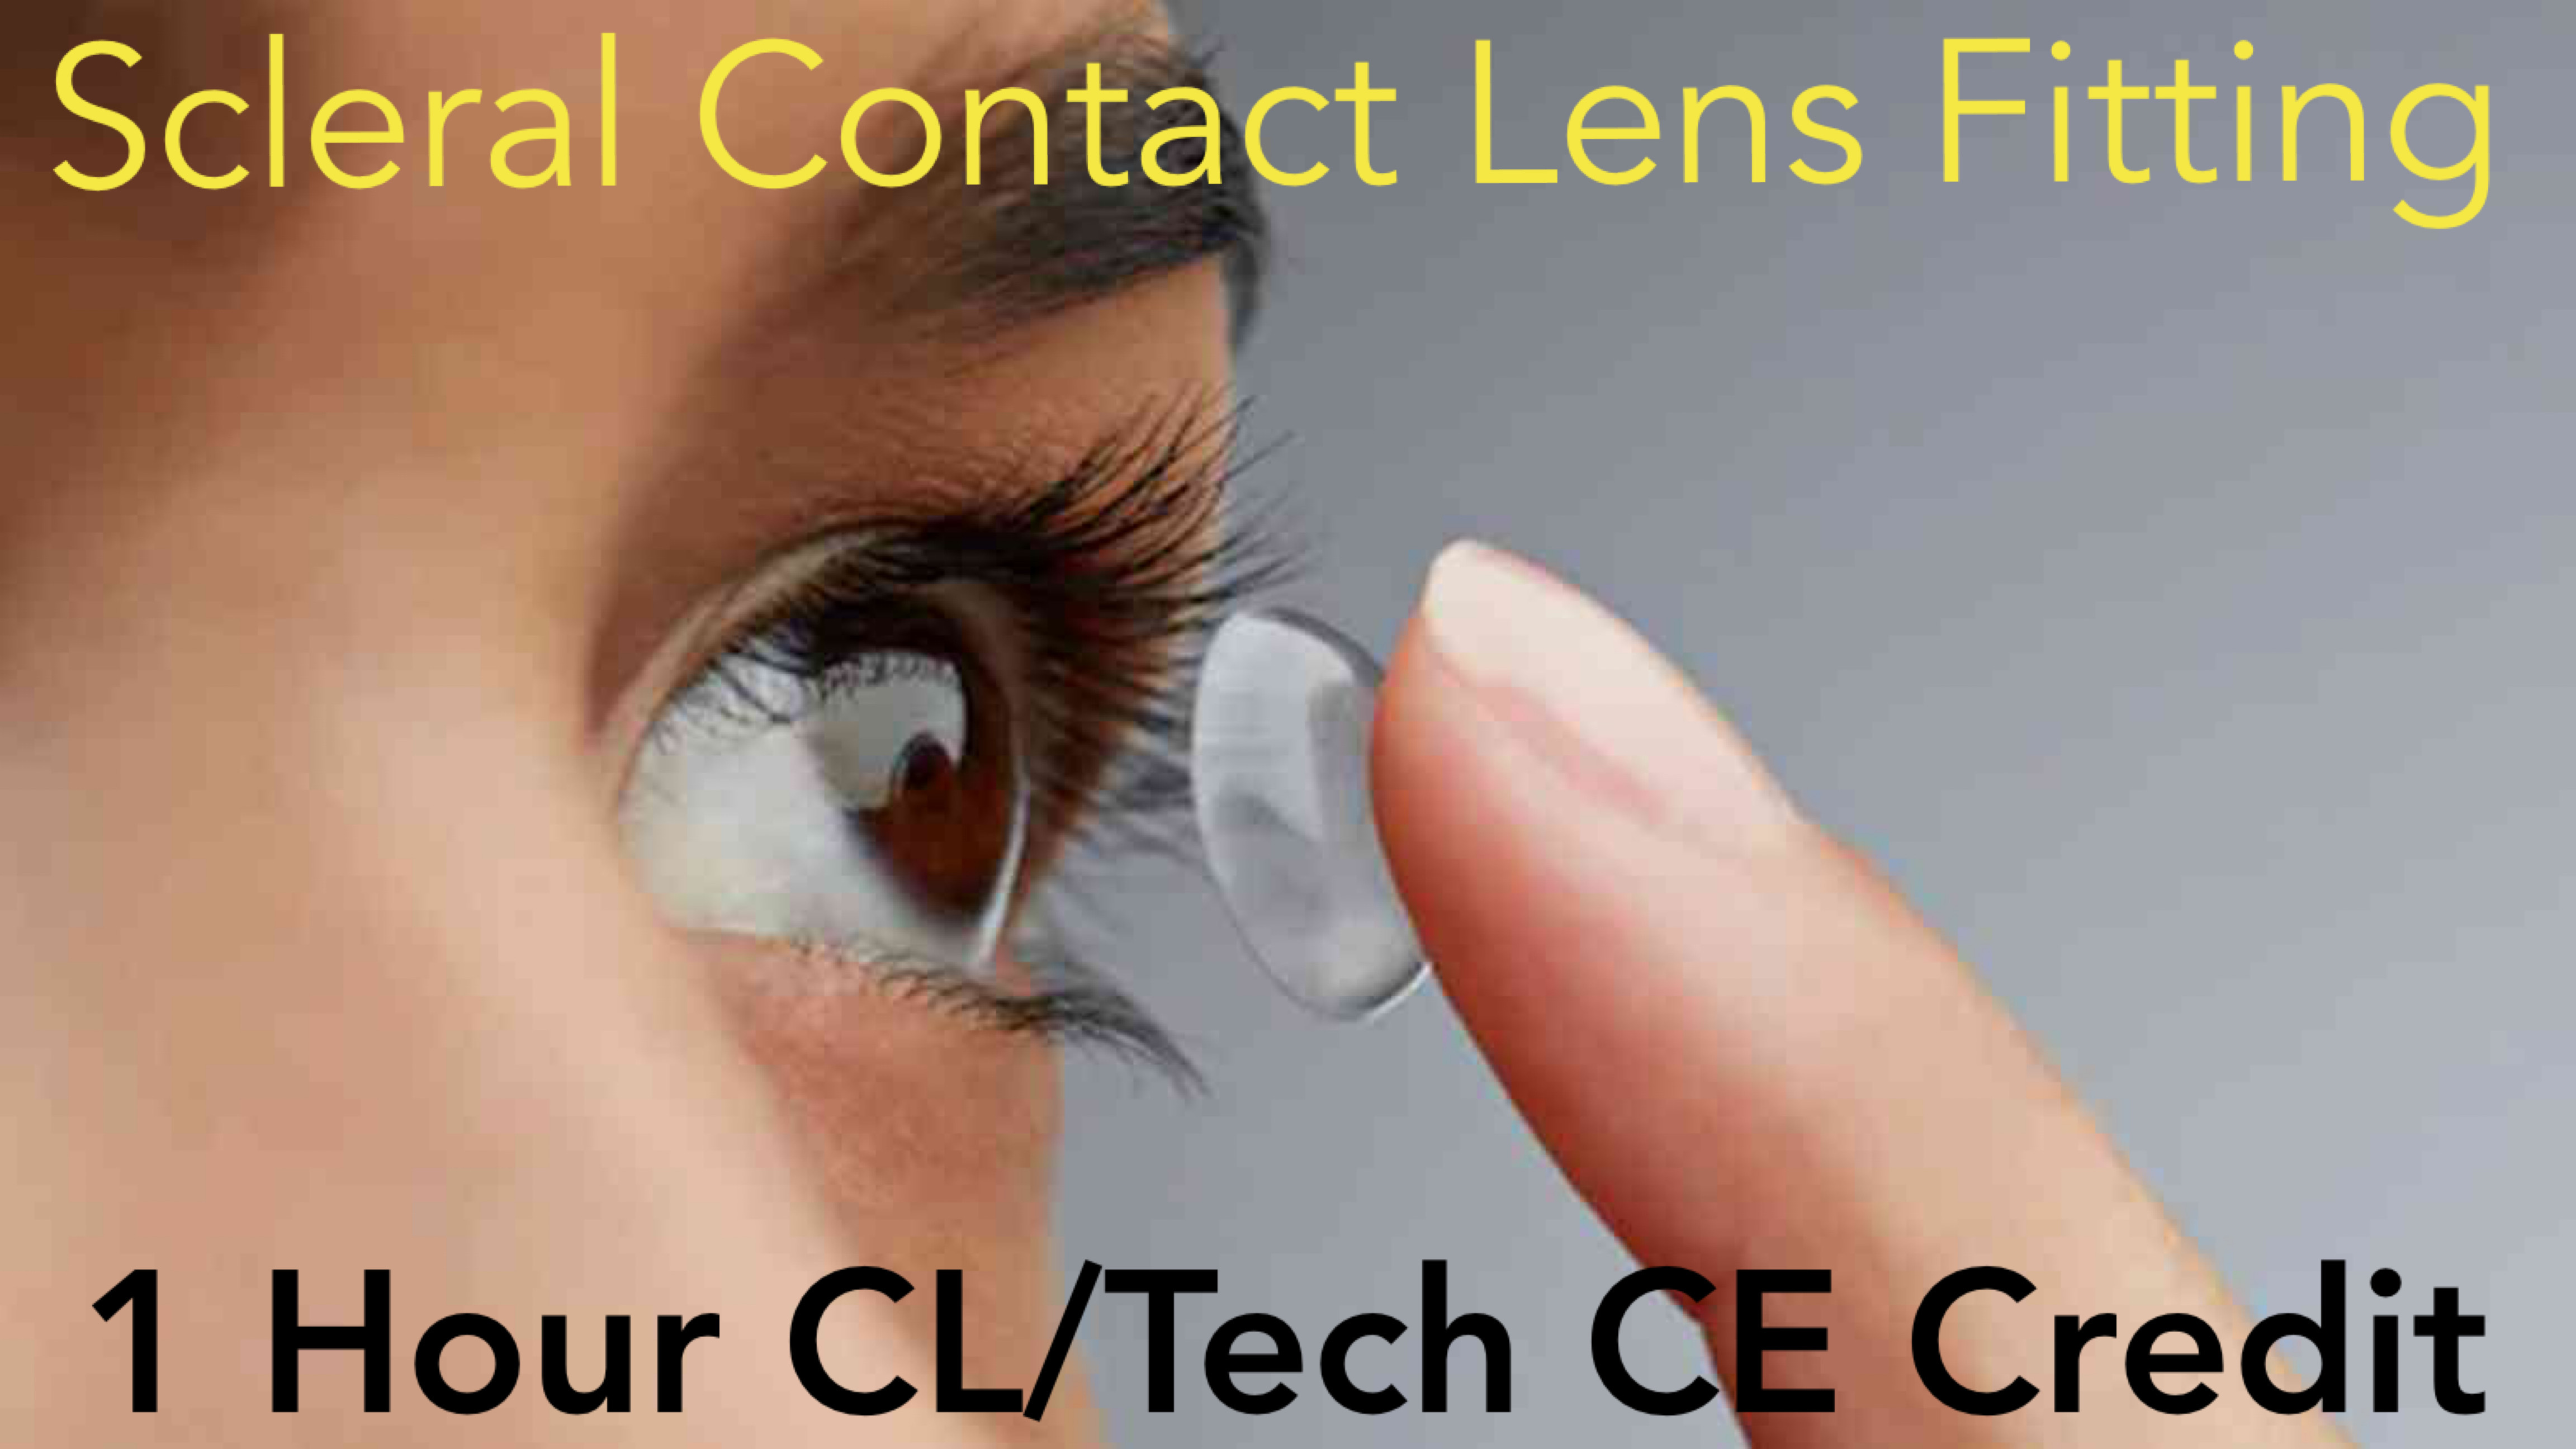 scleral_image_with_product_and_course_name